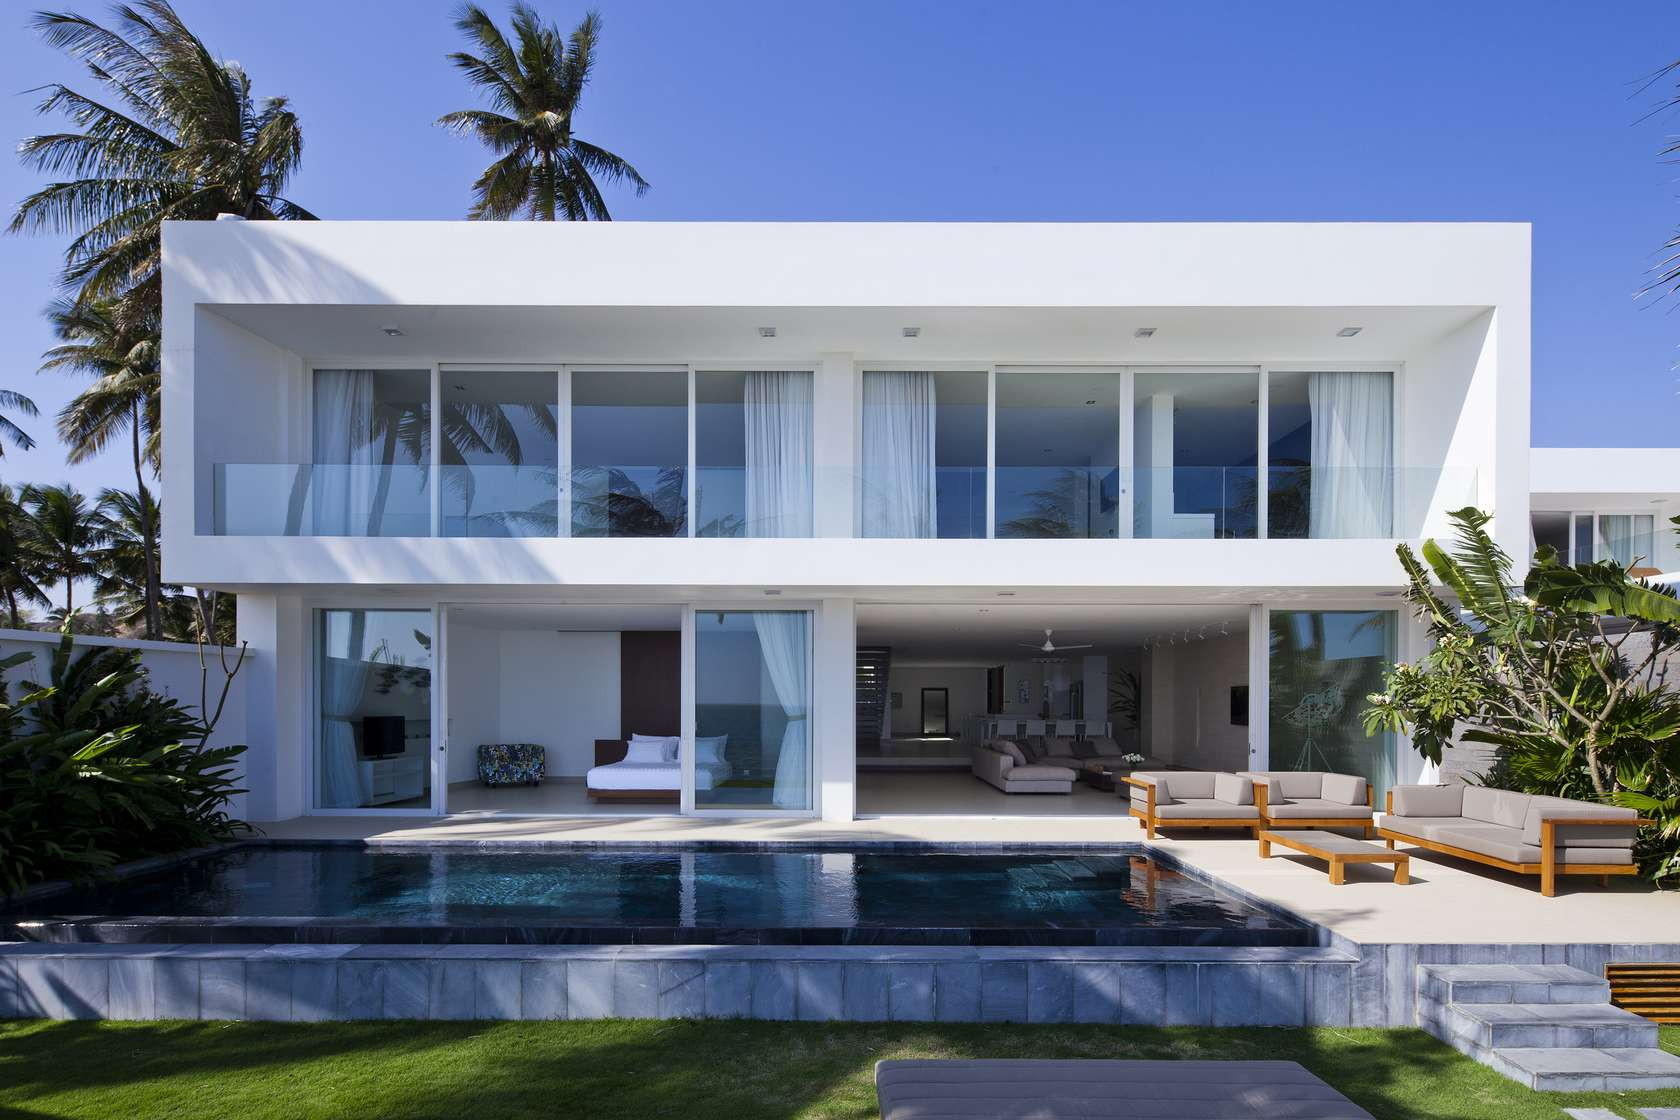 Private beach villas offer spectacular ocean views and for Contemporary beach house designs